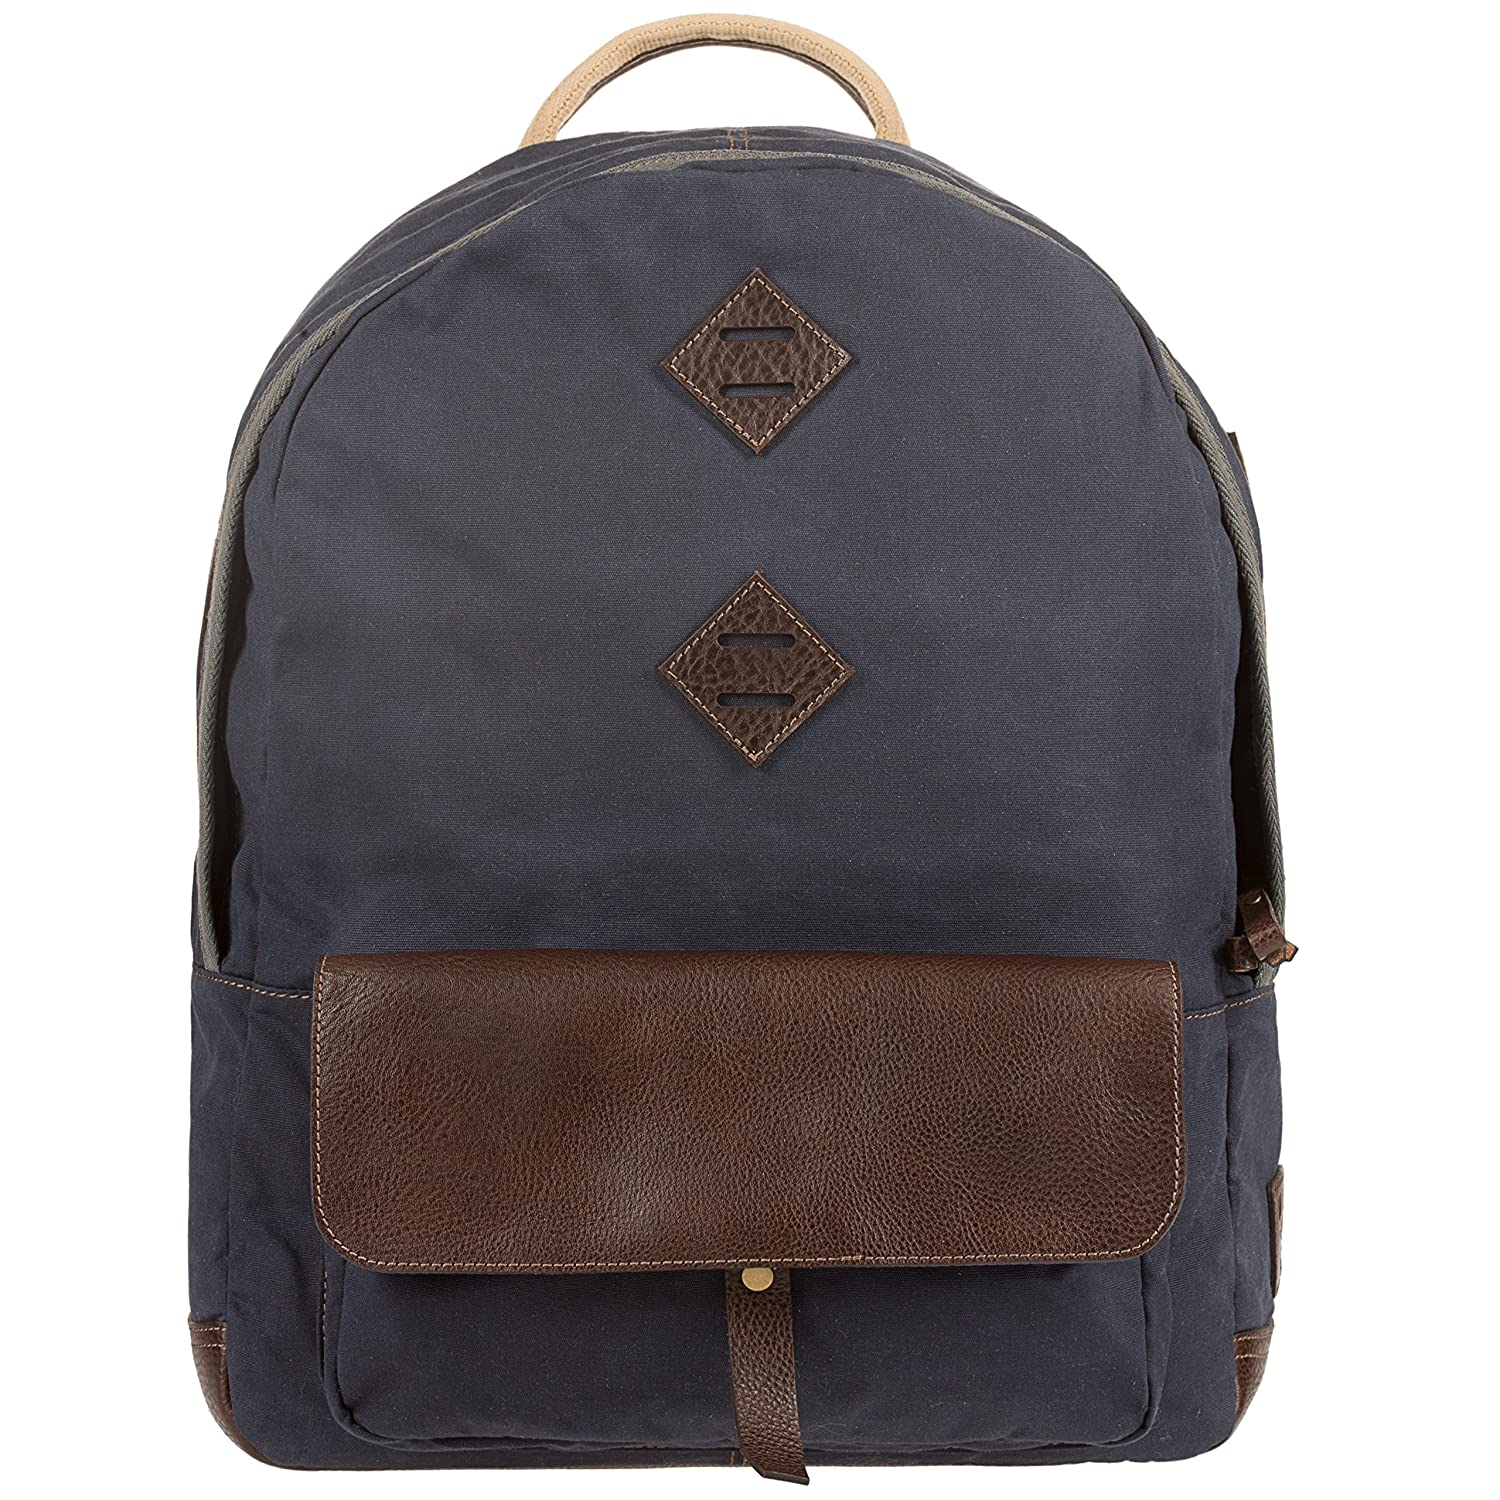 76e787f336f3 ... duffle bag Honey by Tuscany Leather online retailer 3e4b7 4ce27  Will  Leather Goods Mens Owl Point Dome Backpack lovely finest selection 9841c  d3b0f ...